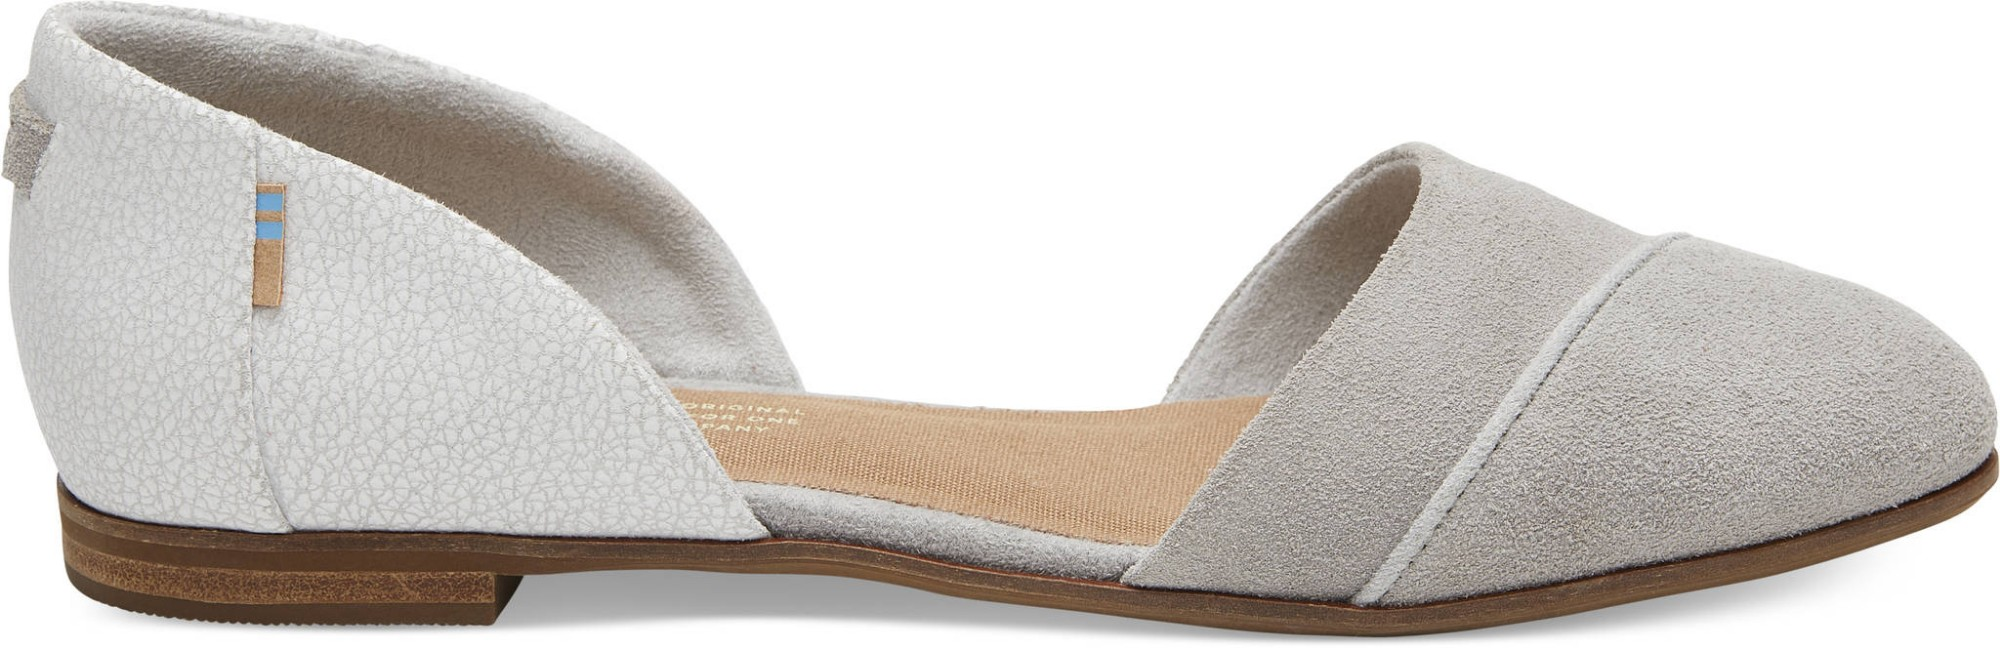 TOMS Suede Crackle Leather Women's Jutti Dorsay Drizzle Grey 39